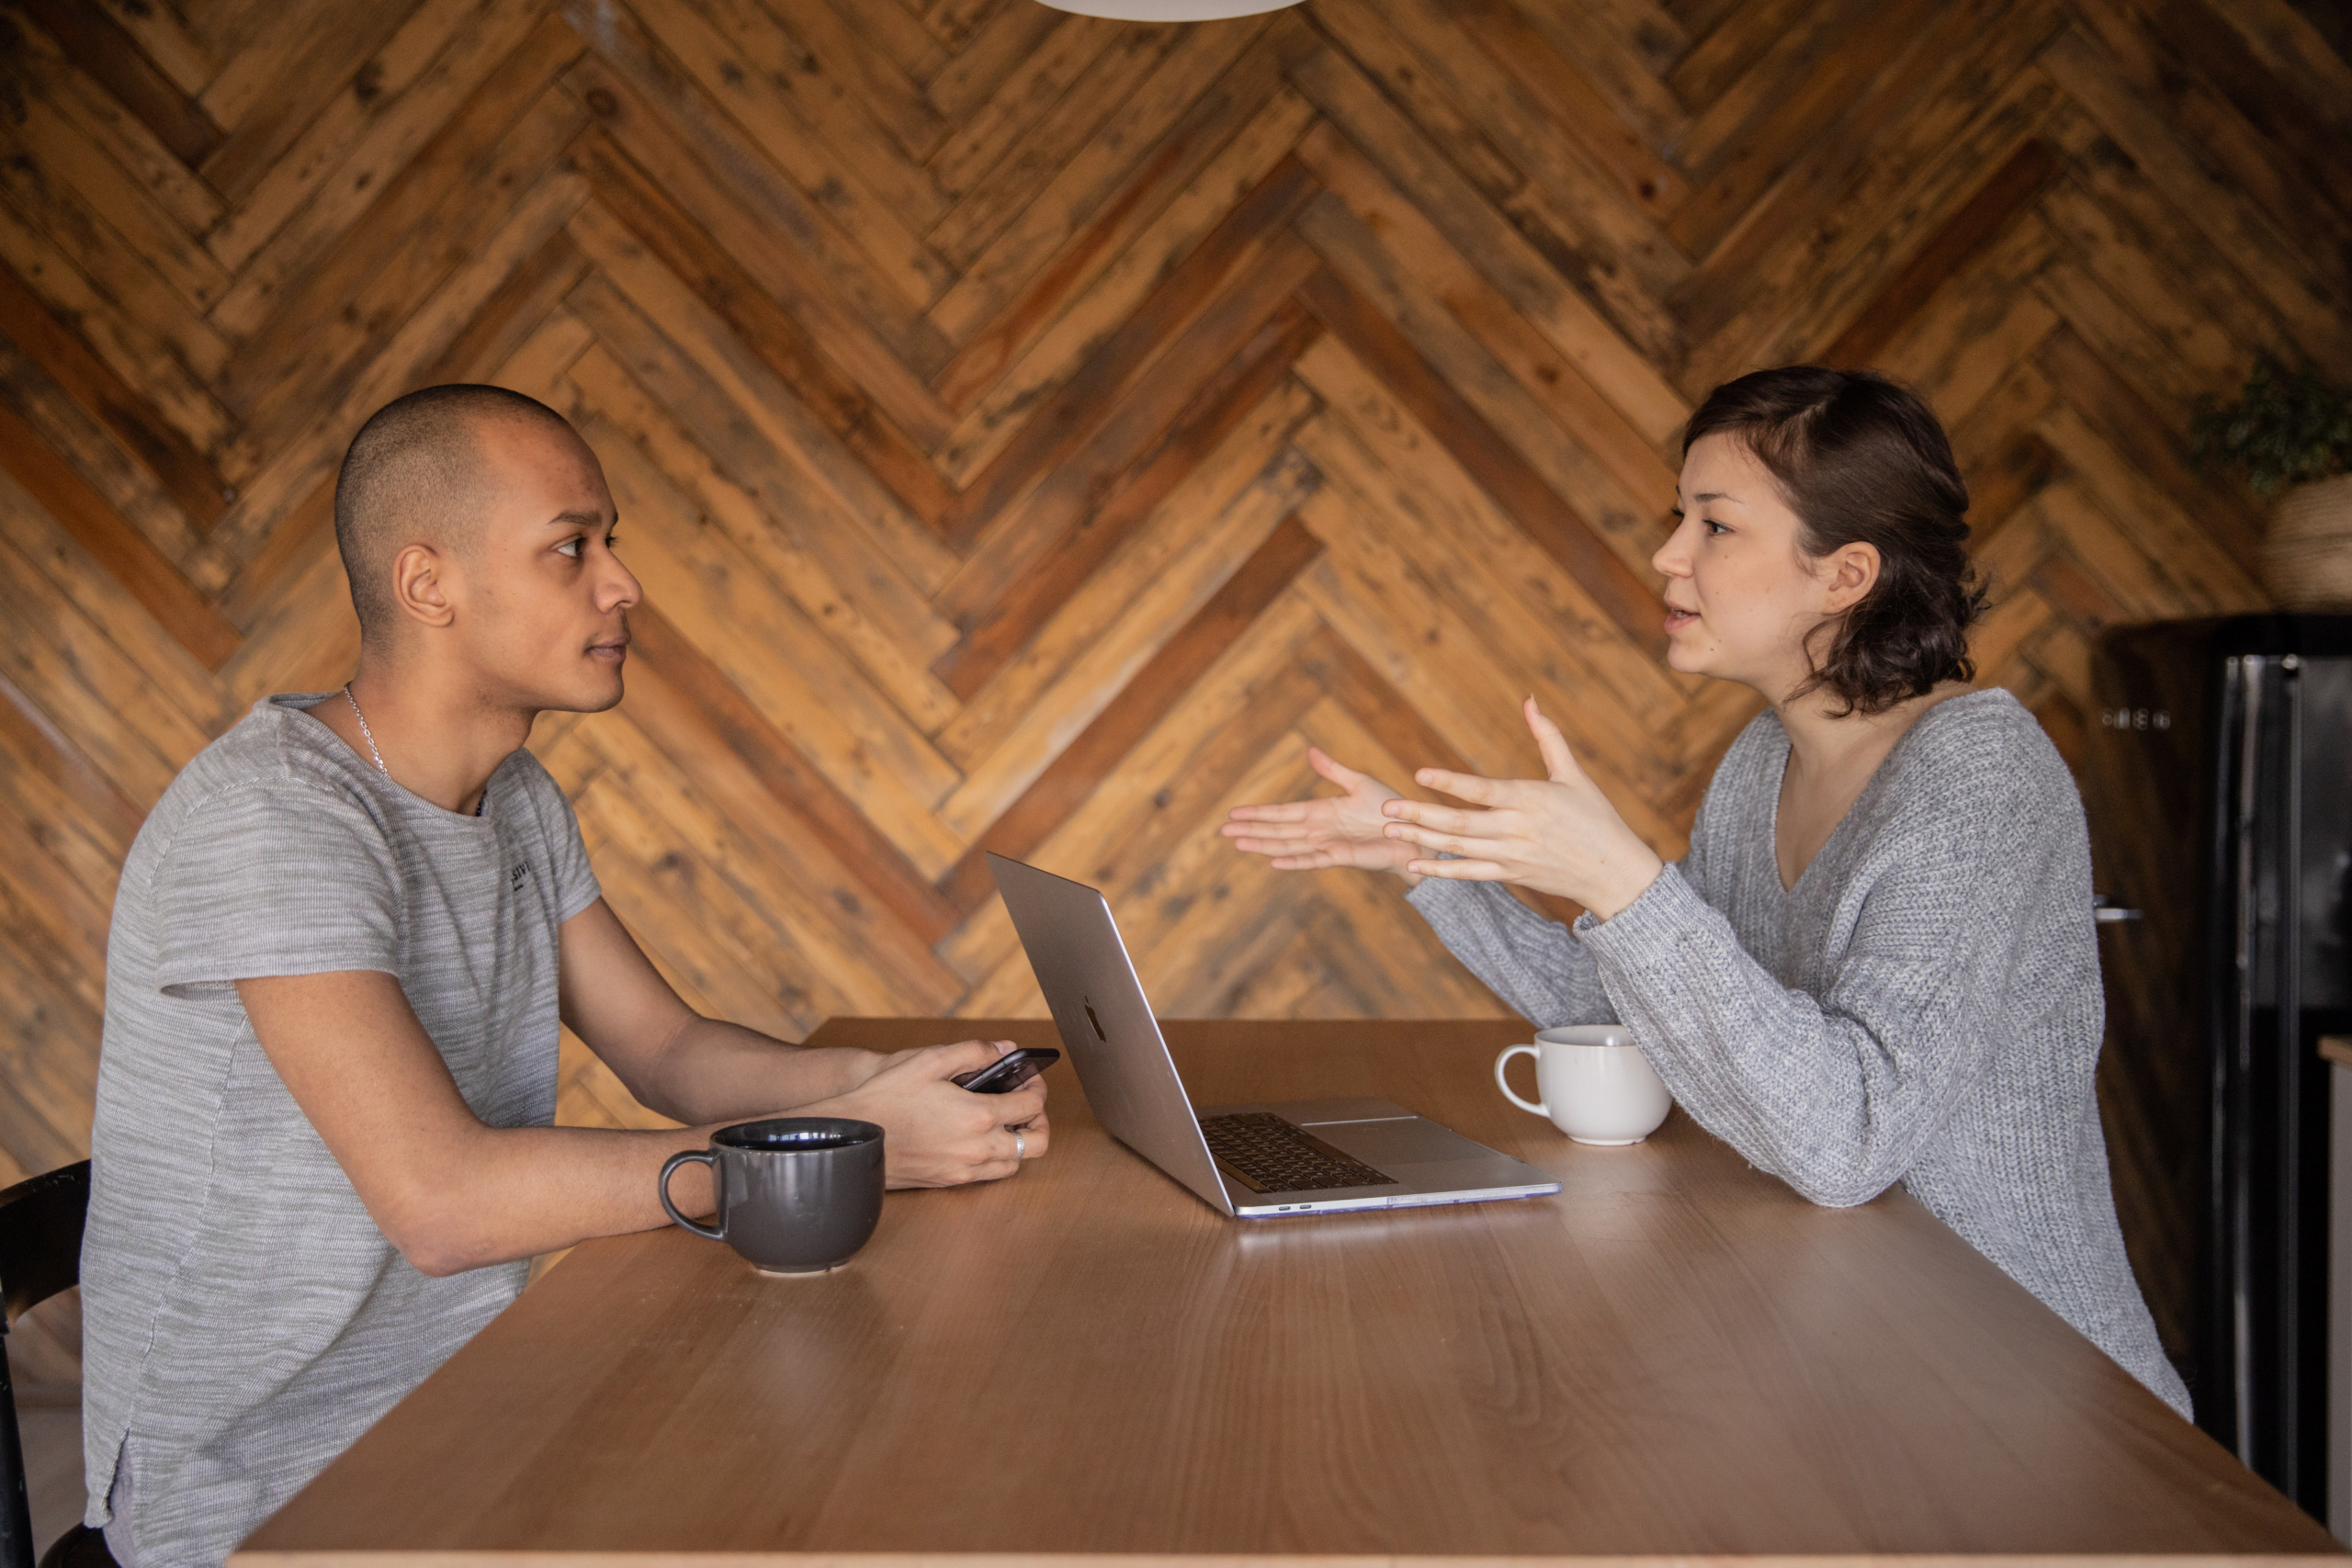 Woman from SEO agency sitting with a laptop in front of her describing a product on her business blog to a man